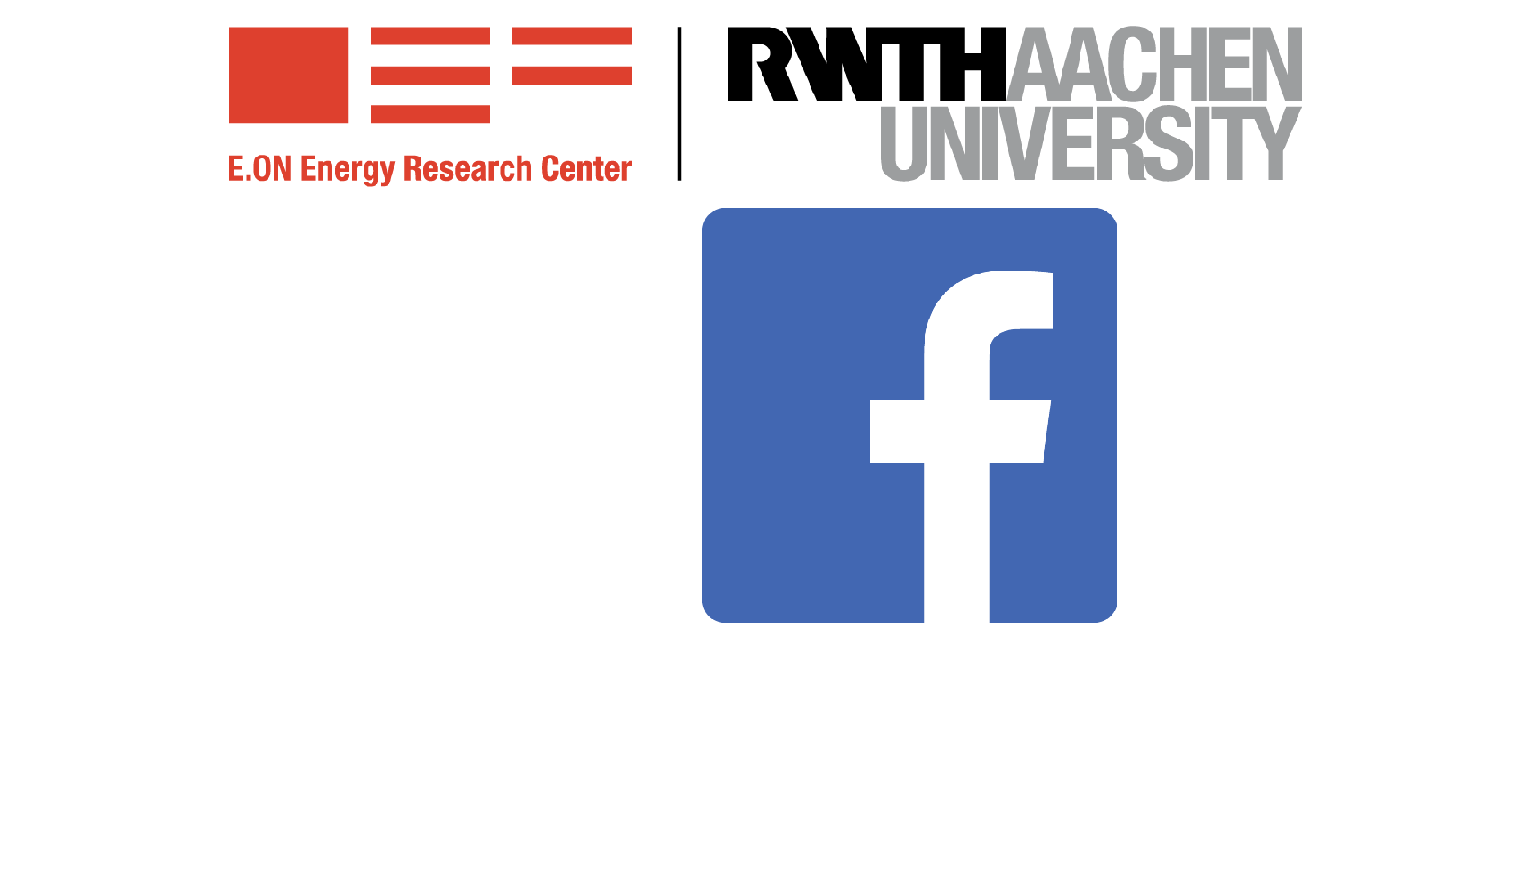 Logos E.ON ERC and Facebook